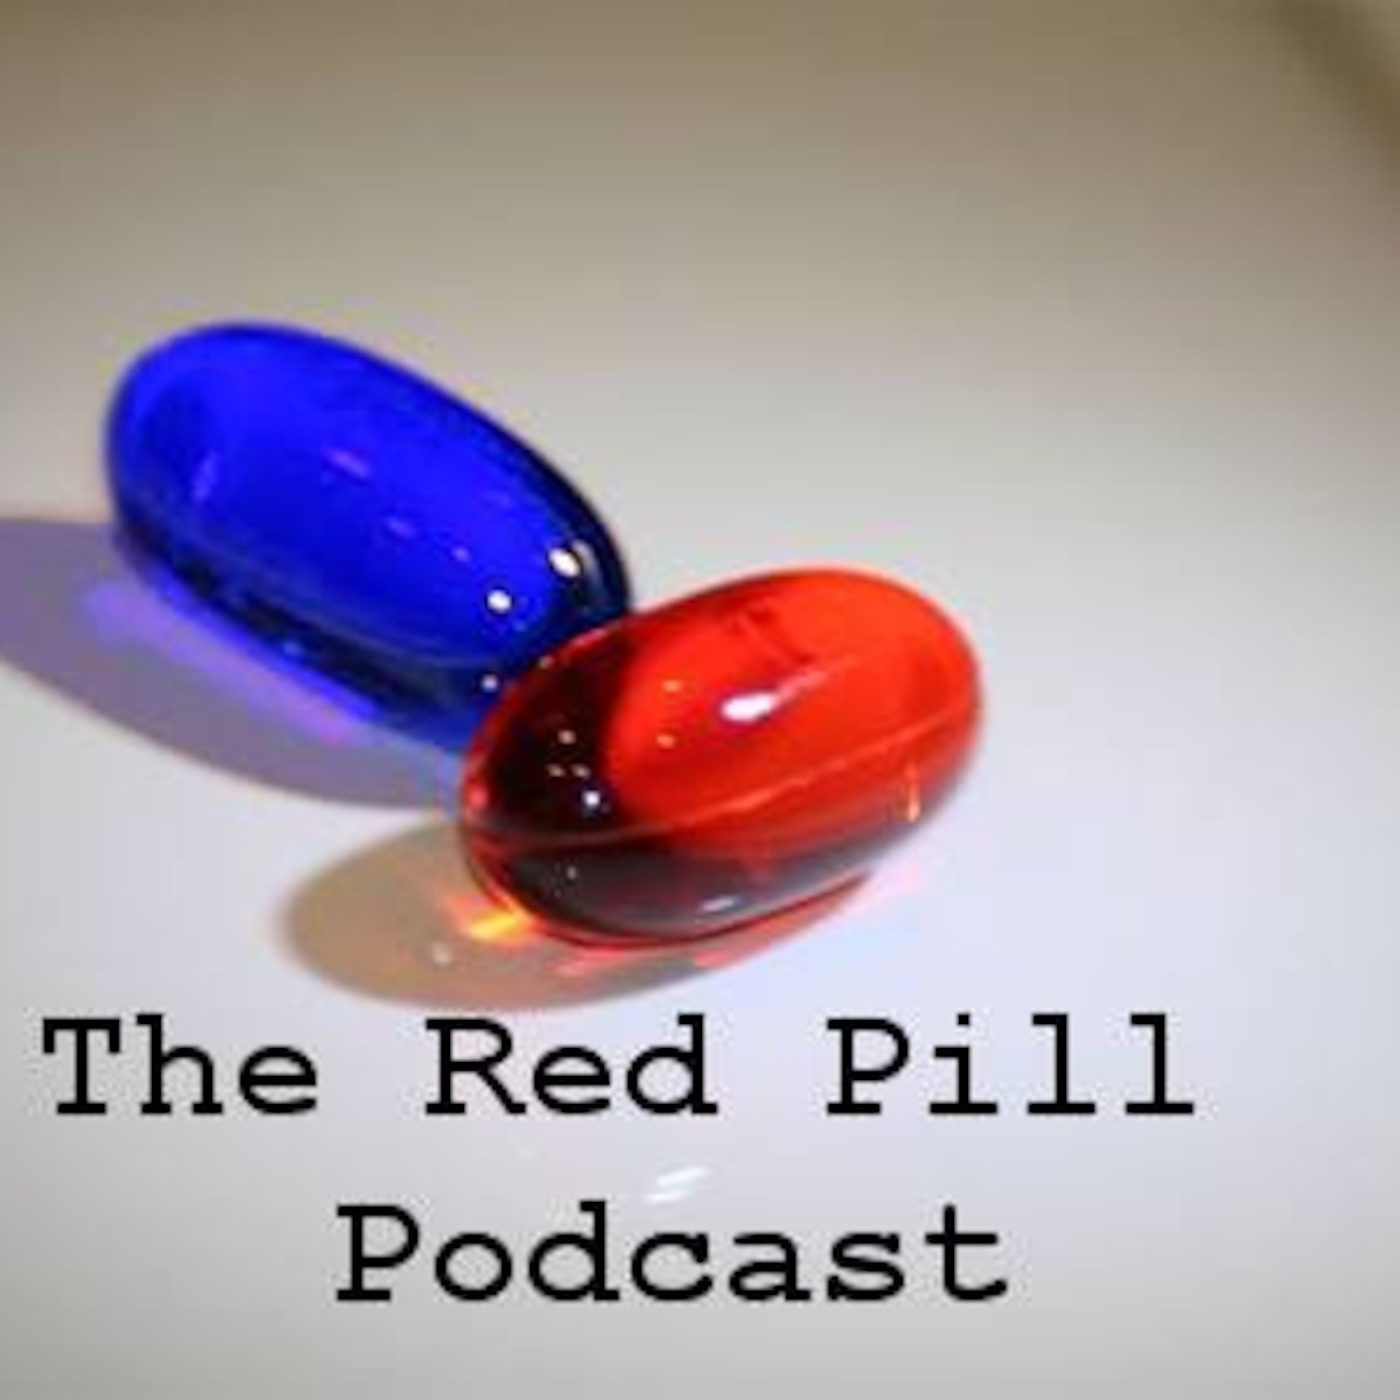 RedPillPodcastArchives' Podcast